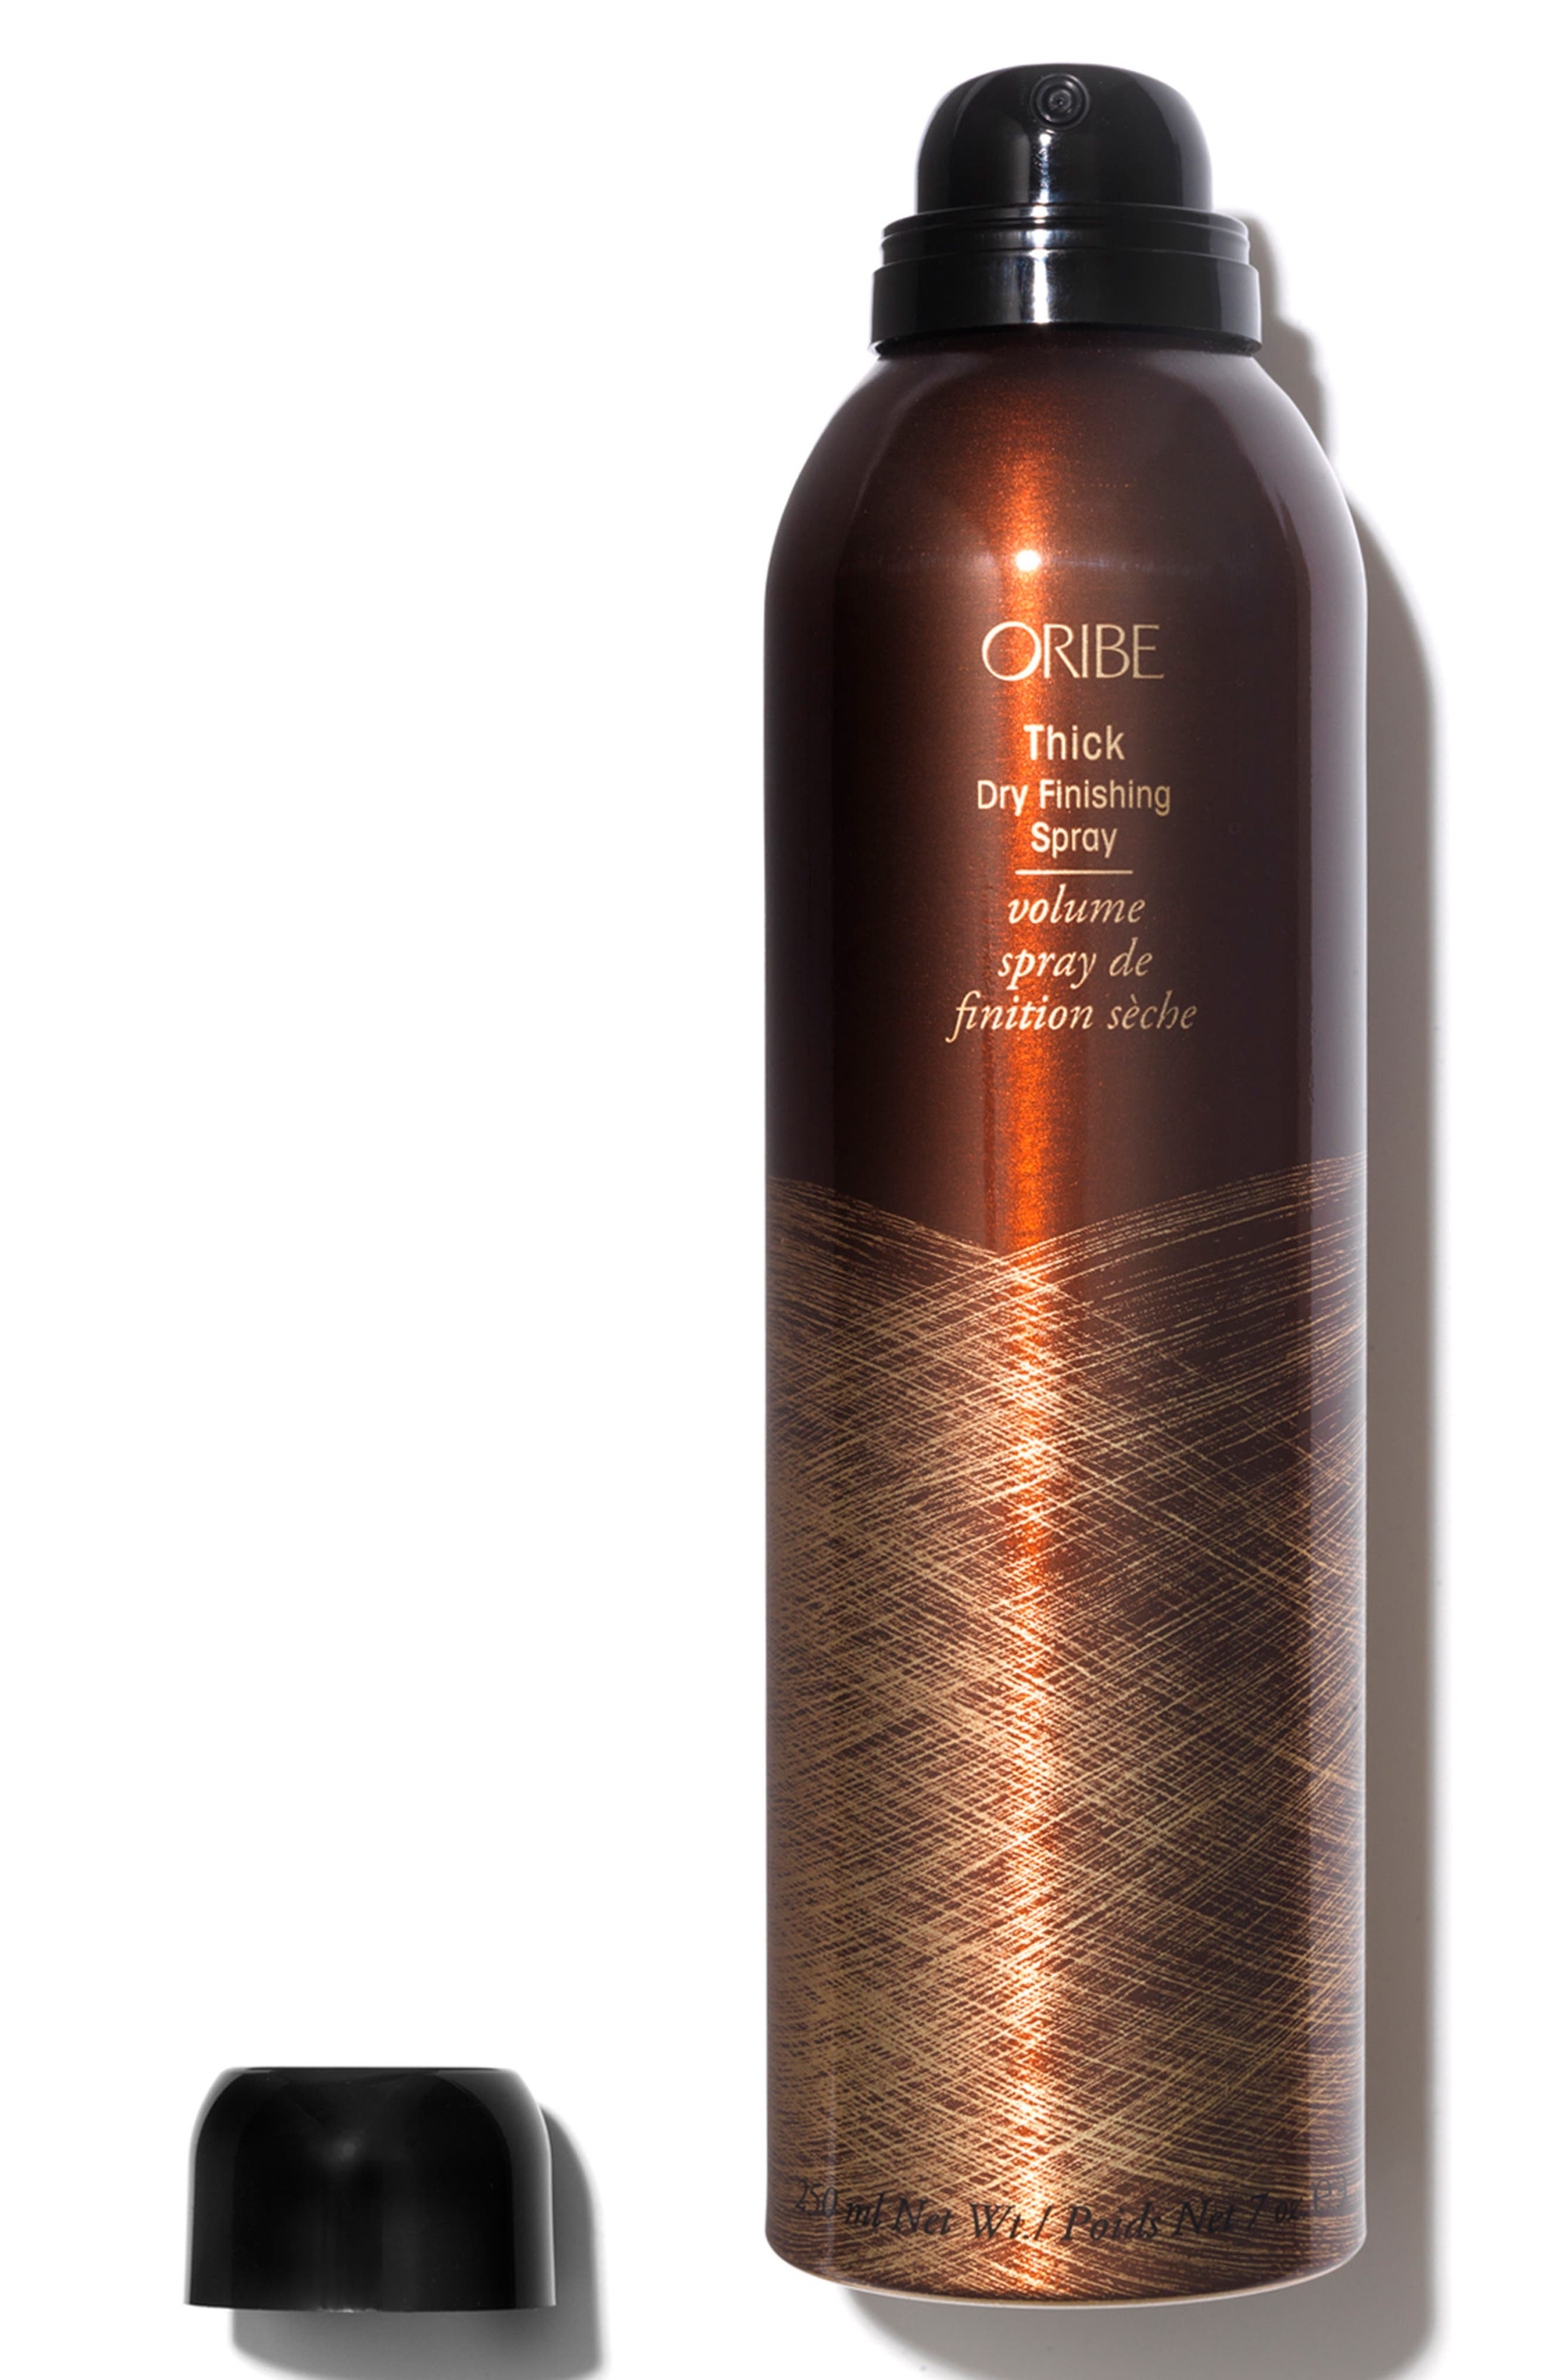 ORIBE, SPACE.NK.apothecary Oribe Thick Dry Finishing Spray, Alternate thumbnail 2, color, NO COLOR